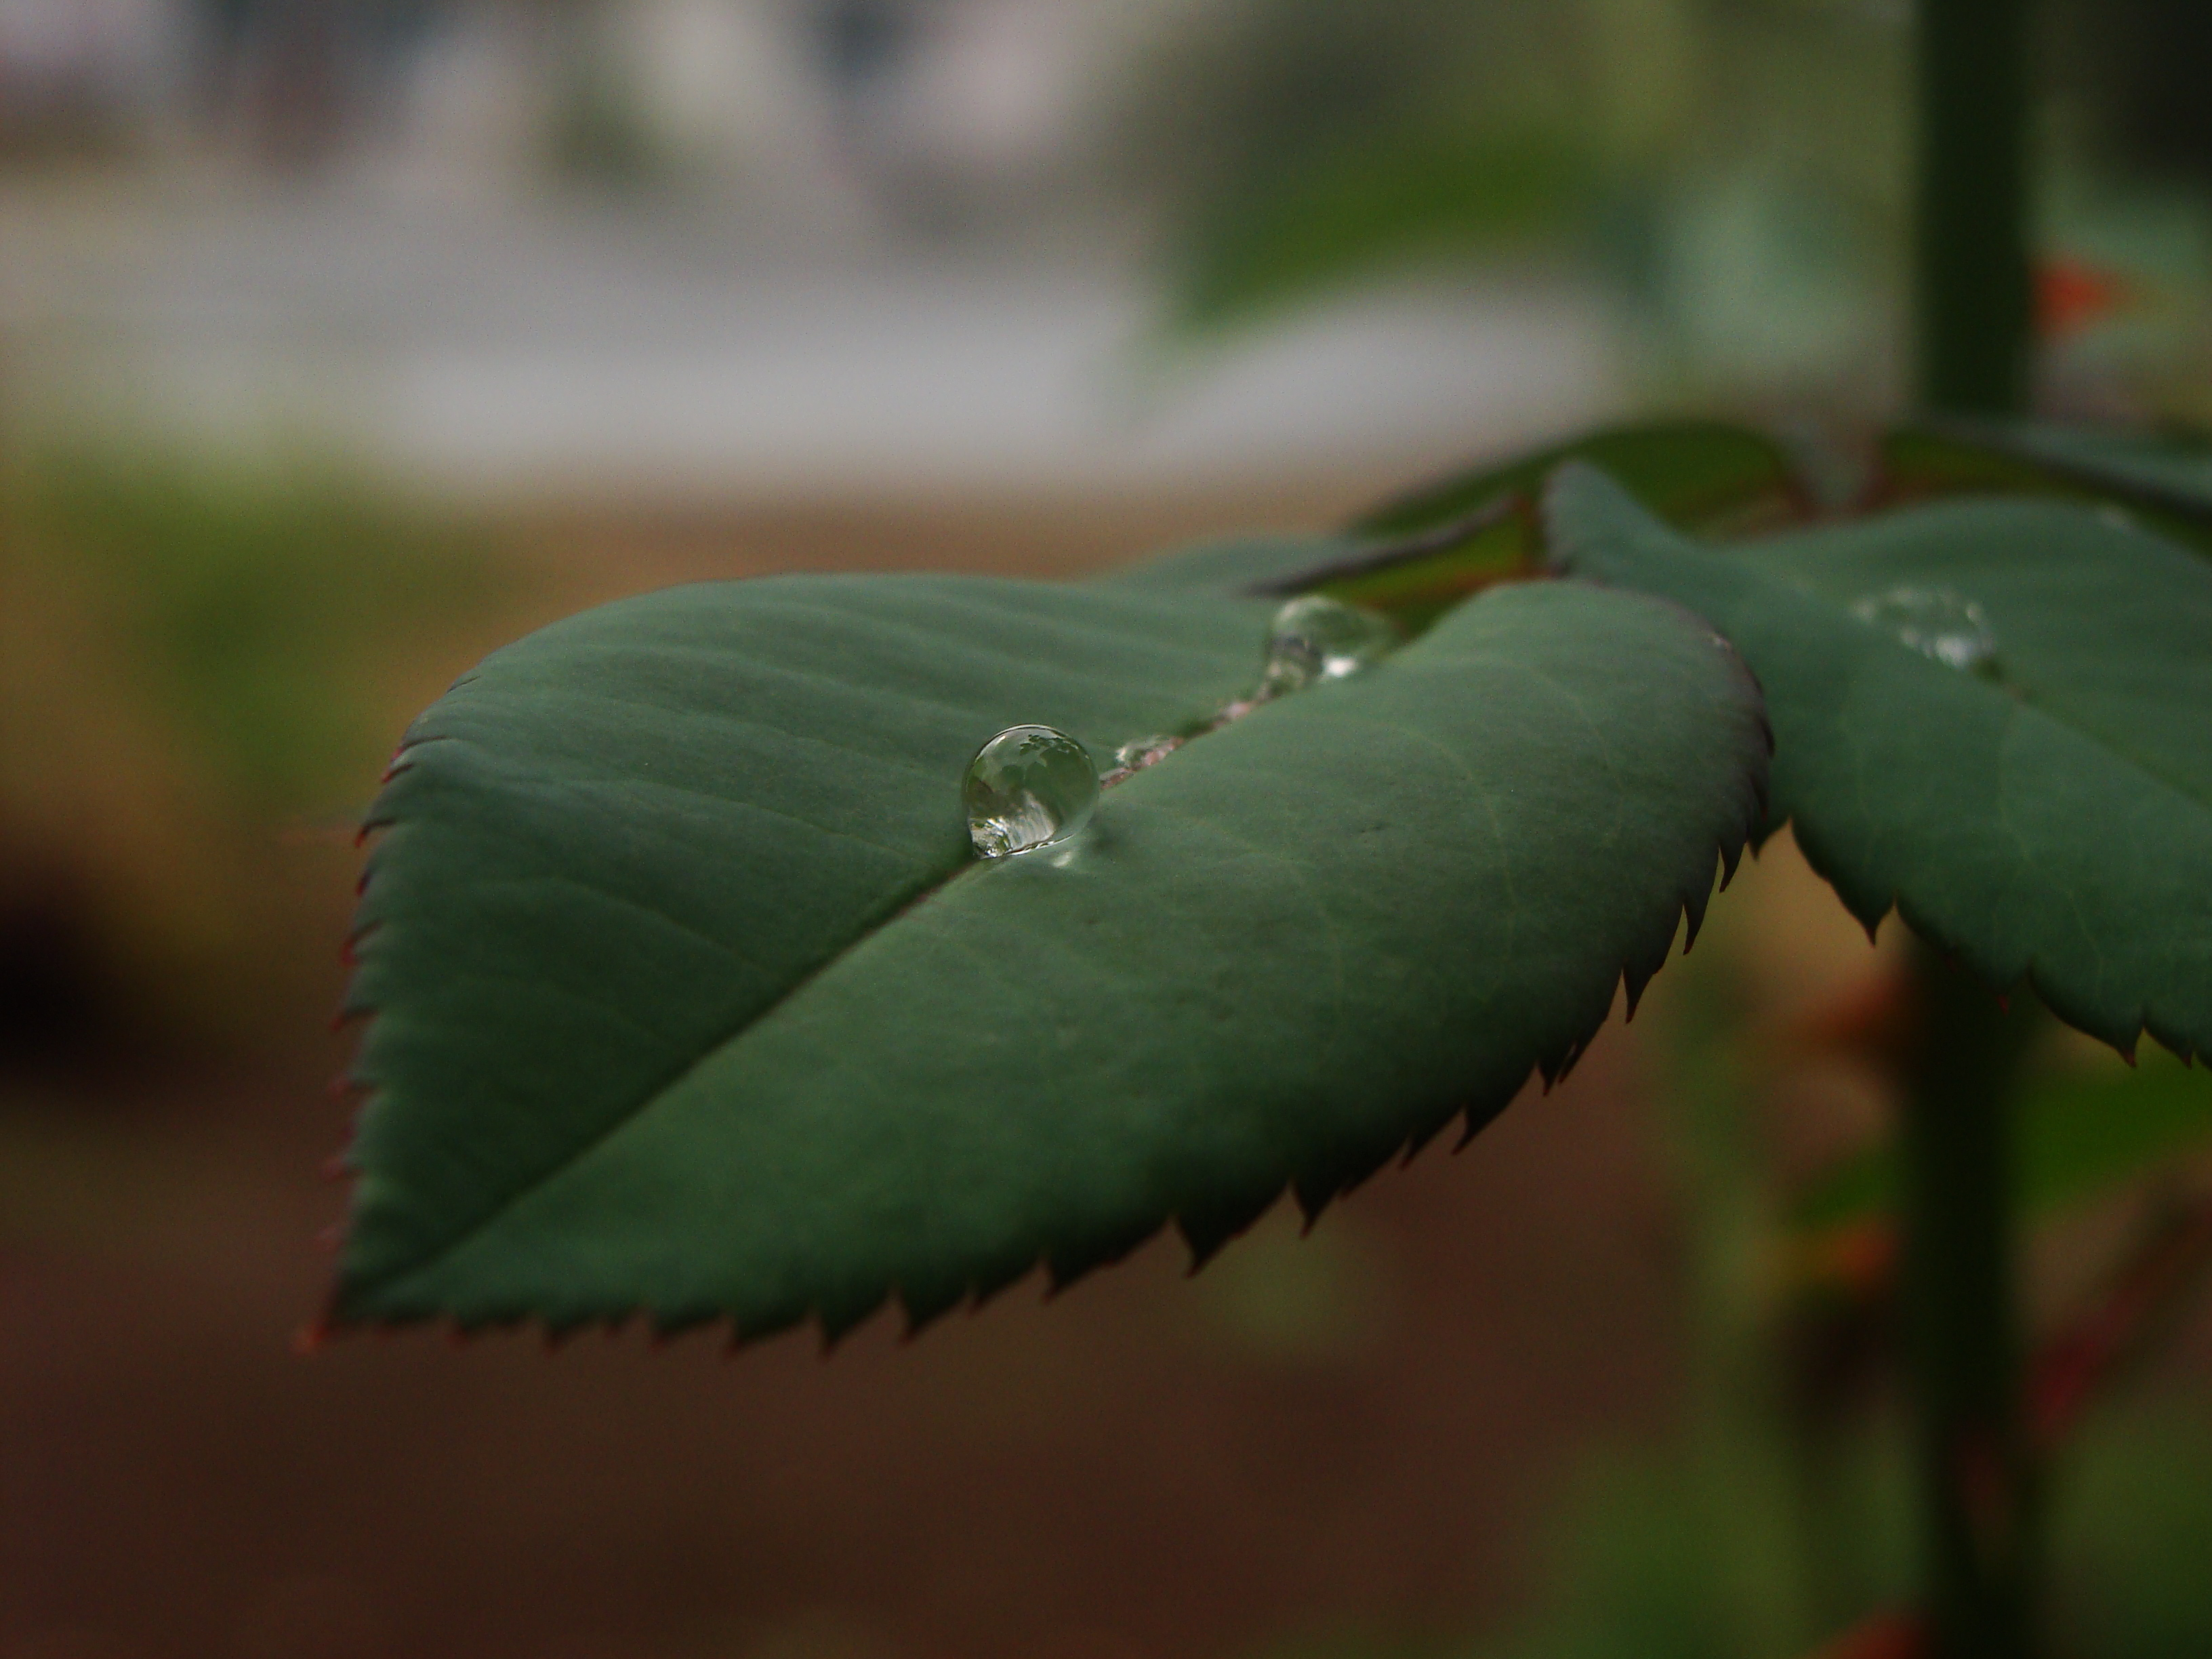 Water_Drop_on_rose_leaf.JPG (3264×2448)